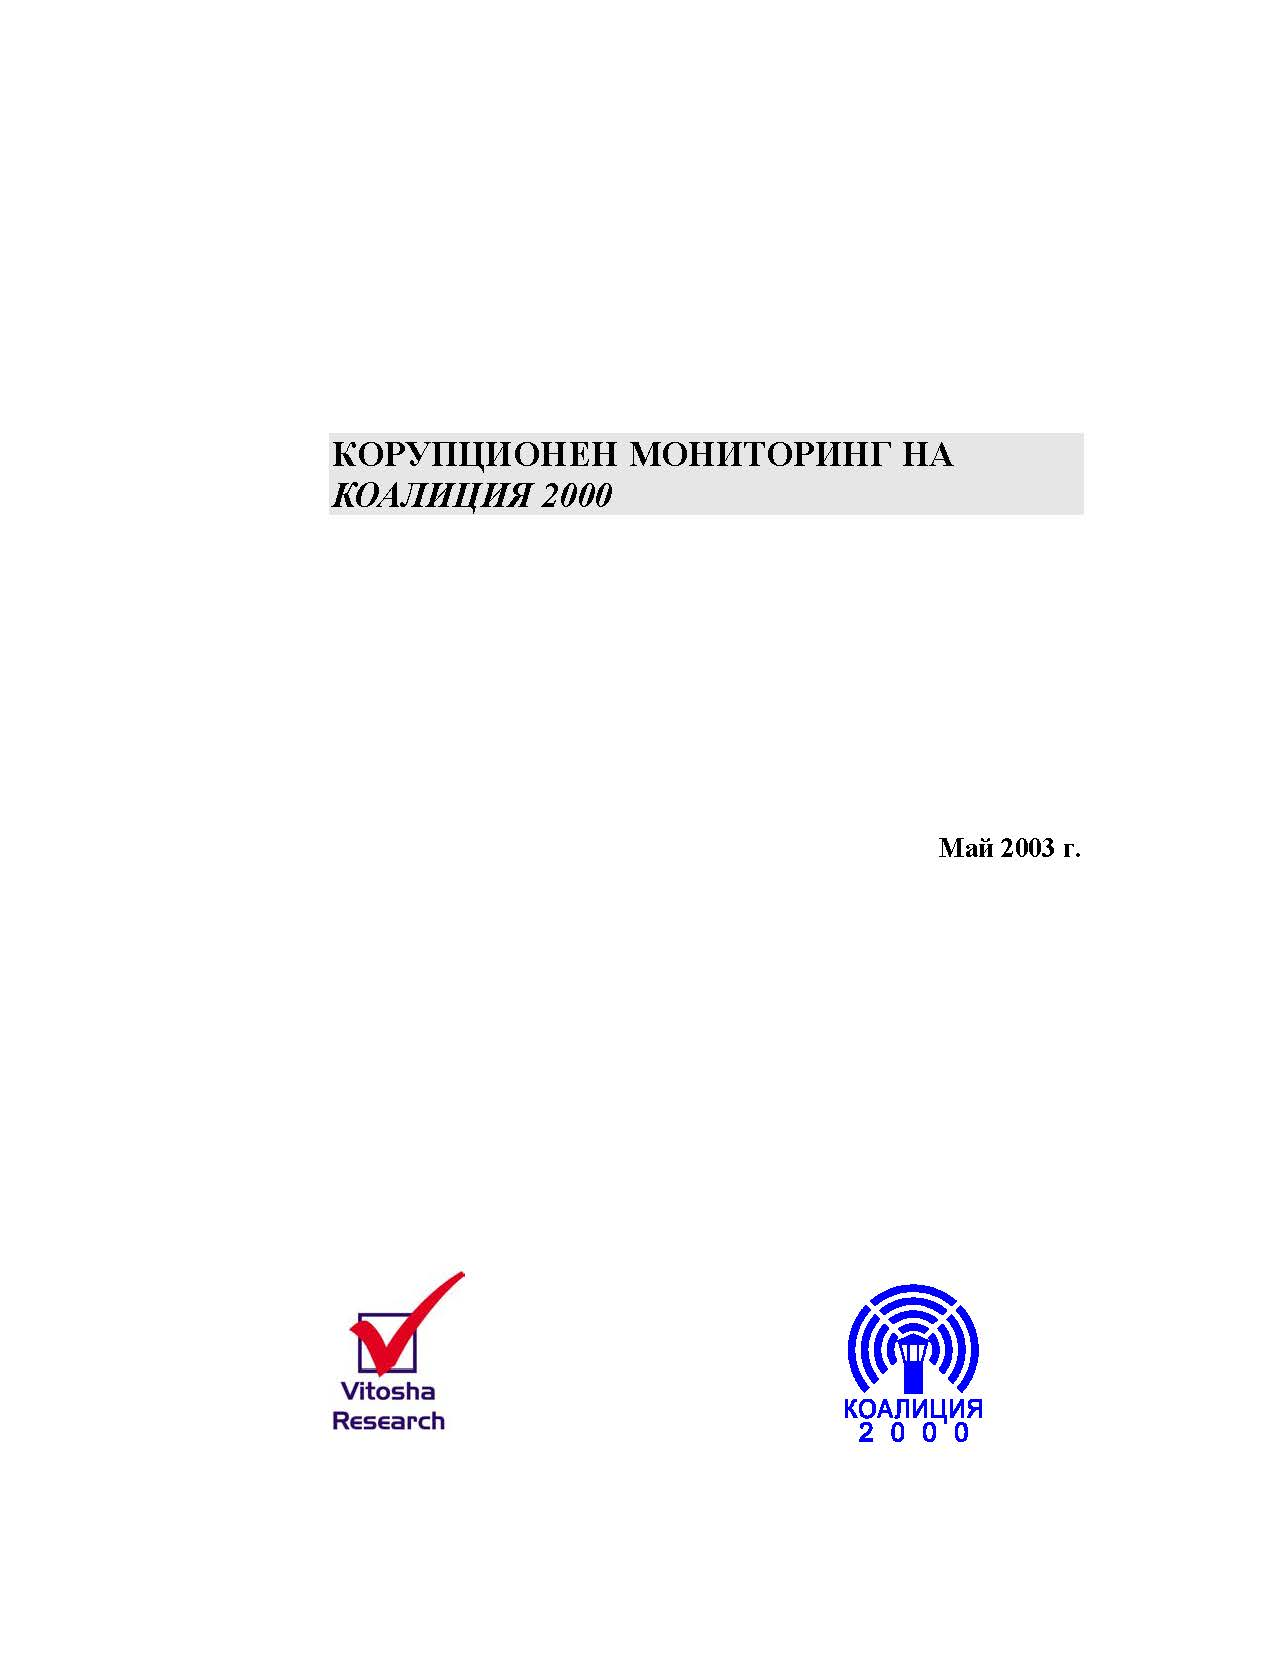 Corruption Monitoring of Coalition 2000, May 2003 Cover Image